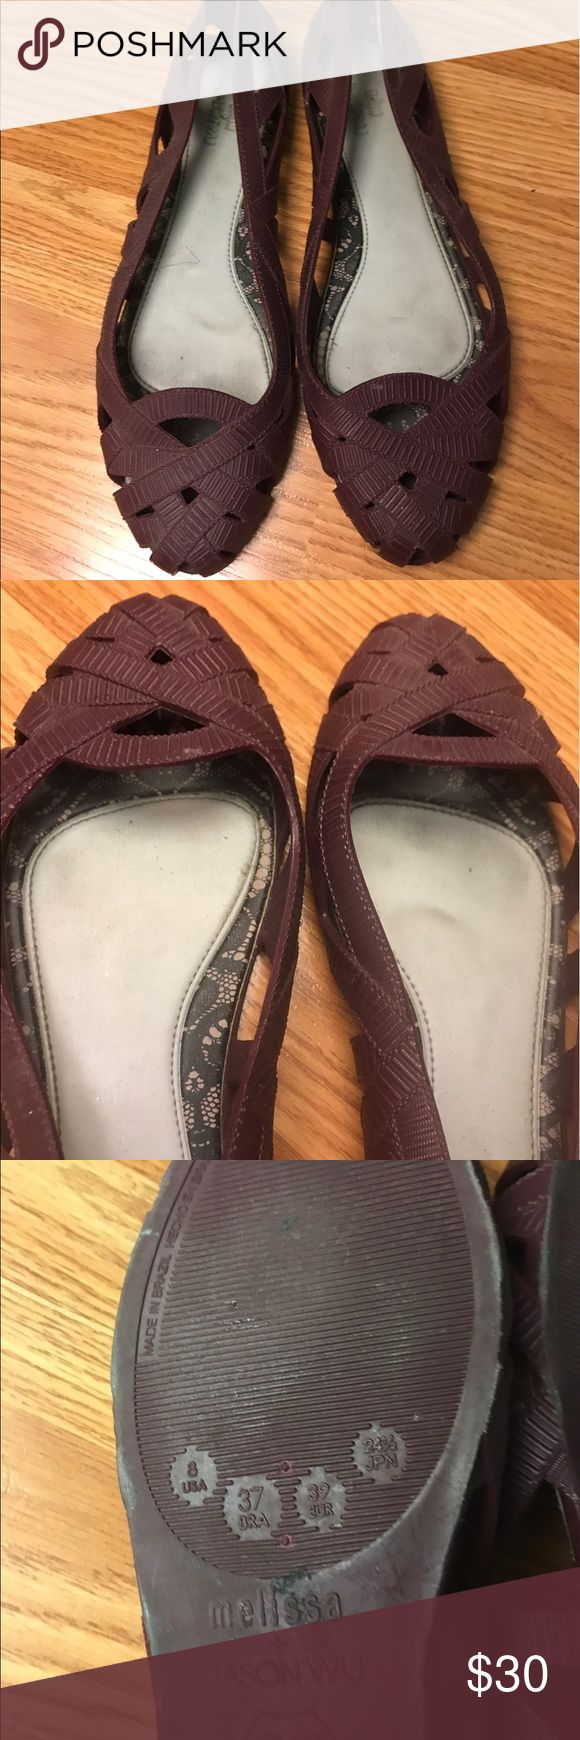 Dark purple Melissa flats Size 8 USA , no trades. Smells like bubble gum. Used a couple of times Melissa Shoes Flats & Loafers